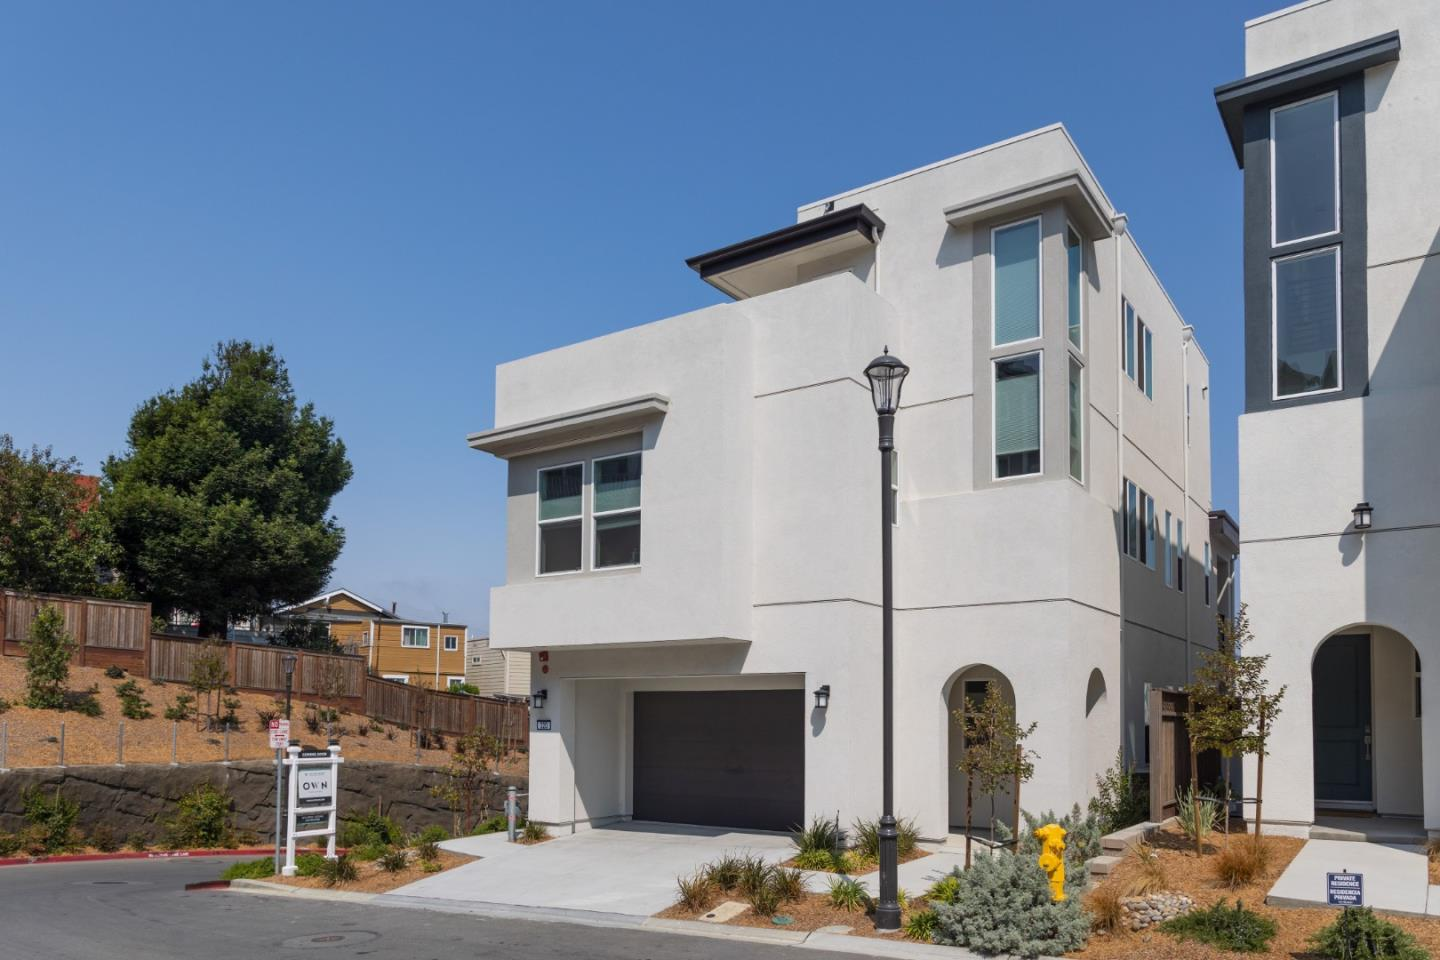 Stunning new build in a beautiful & sunny neighborhood in Daly City, the spacious, corner lot, 4-level, 4bd/4.5ba home is not one to miss! The spacious property feat. $150k in upgrades from custom staircases, blinds/curtains, light fixtures, countertops & multi-slide patio doors. On the ground floor, find a large living space & walk-out balcony w/ an open format layout that flows into the kitchen & dining space - sound system wiring ready for you! The kitchen is complete w/ upgraded countertops & stainless steel appliances. Lower level feat. an additional living room, guest bedroom, & full bath w/ separate entrance & option to add kitchenette. Upper level incl. owners suite & two sizeable guest rooms. The owners bedroom is complete private balcony & w/ en suite bathroom featuring separate shower & tub, walk-in closet, & double sink vanities. Bonus studio perfect for at home gym. Top level features loft that leads onto rooftop terrace w/ beautiful views of SF. Attached 2-car garage.